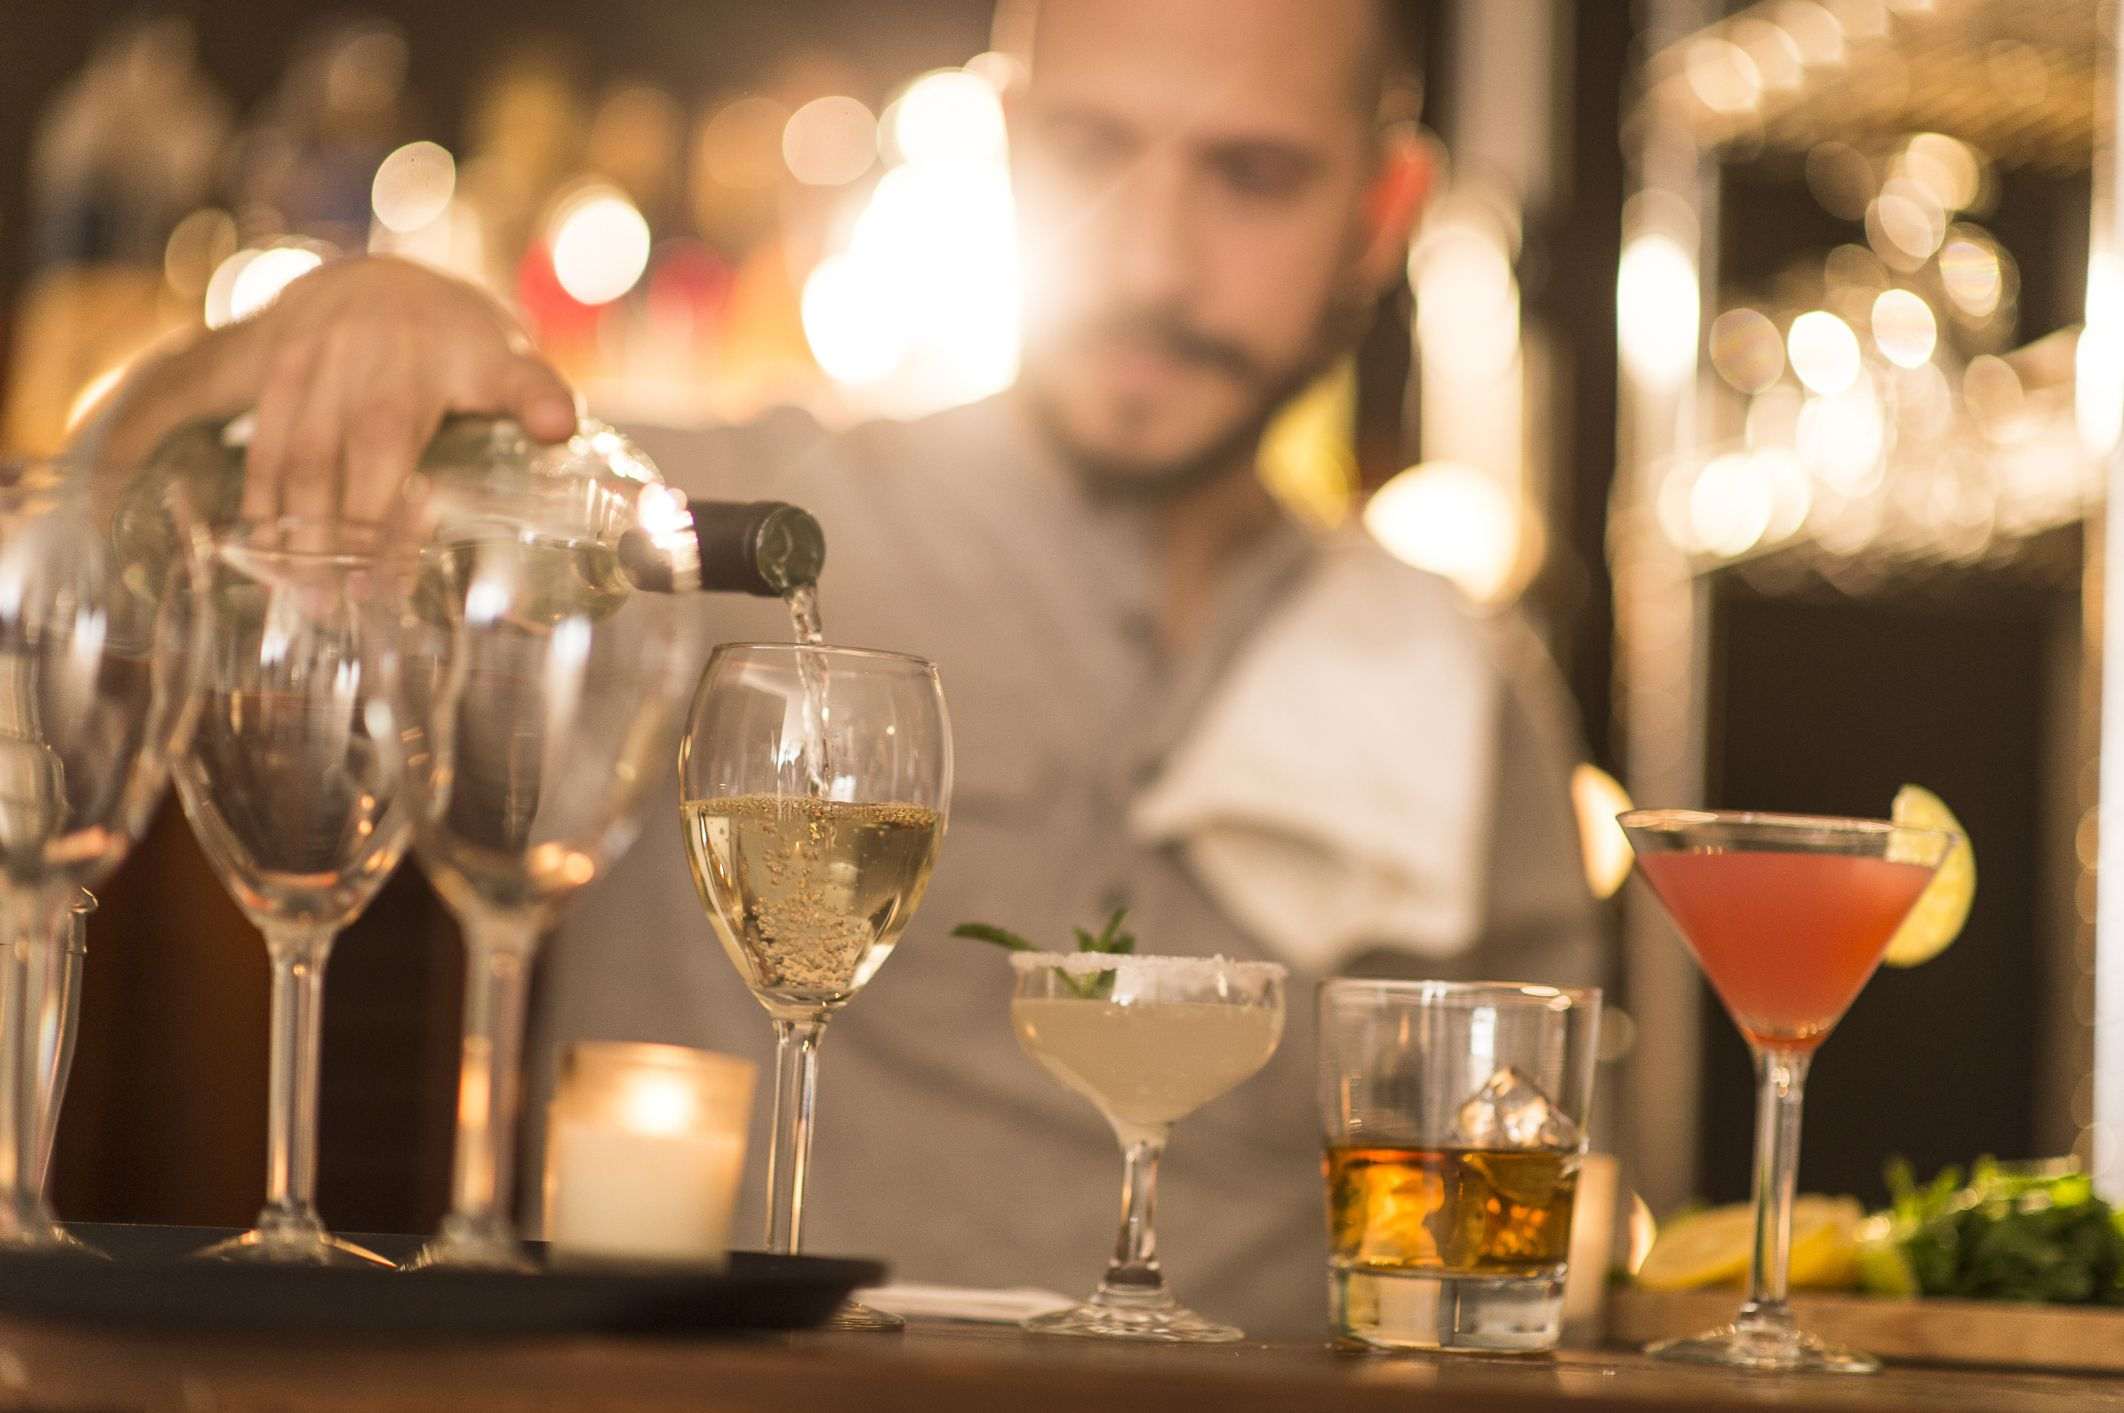 Top Most Important Skills For A Bartender